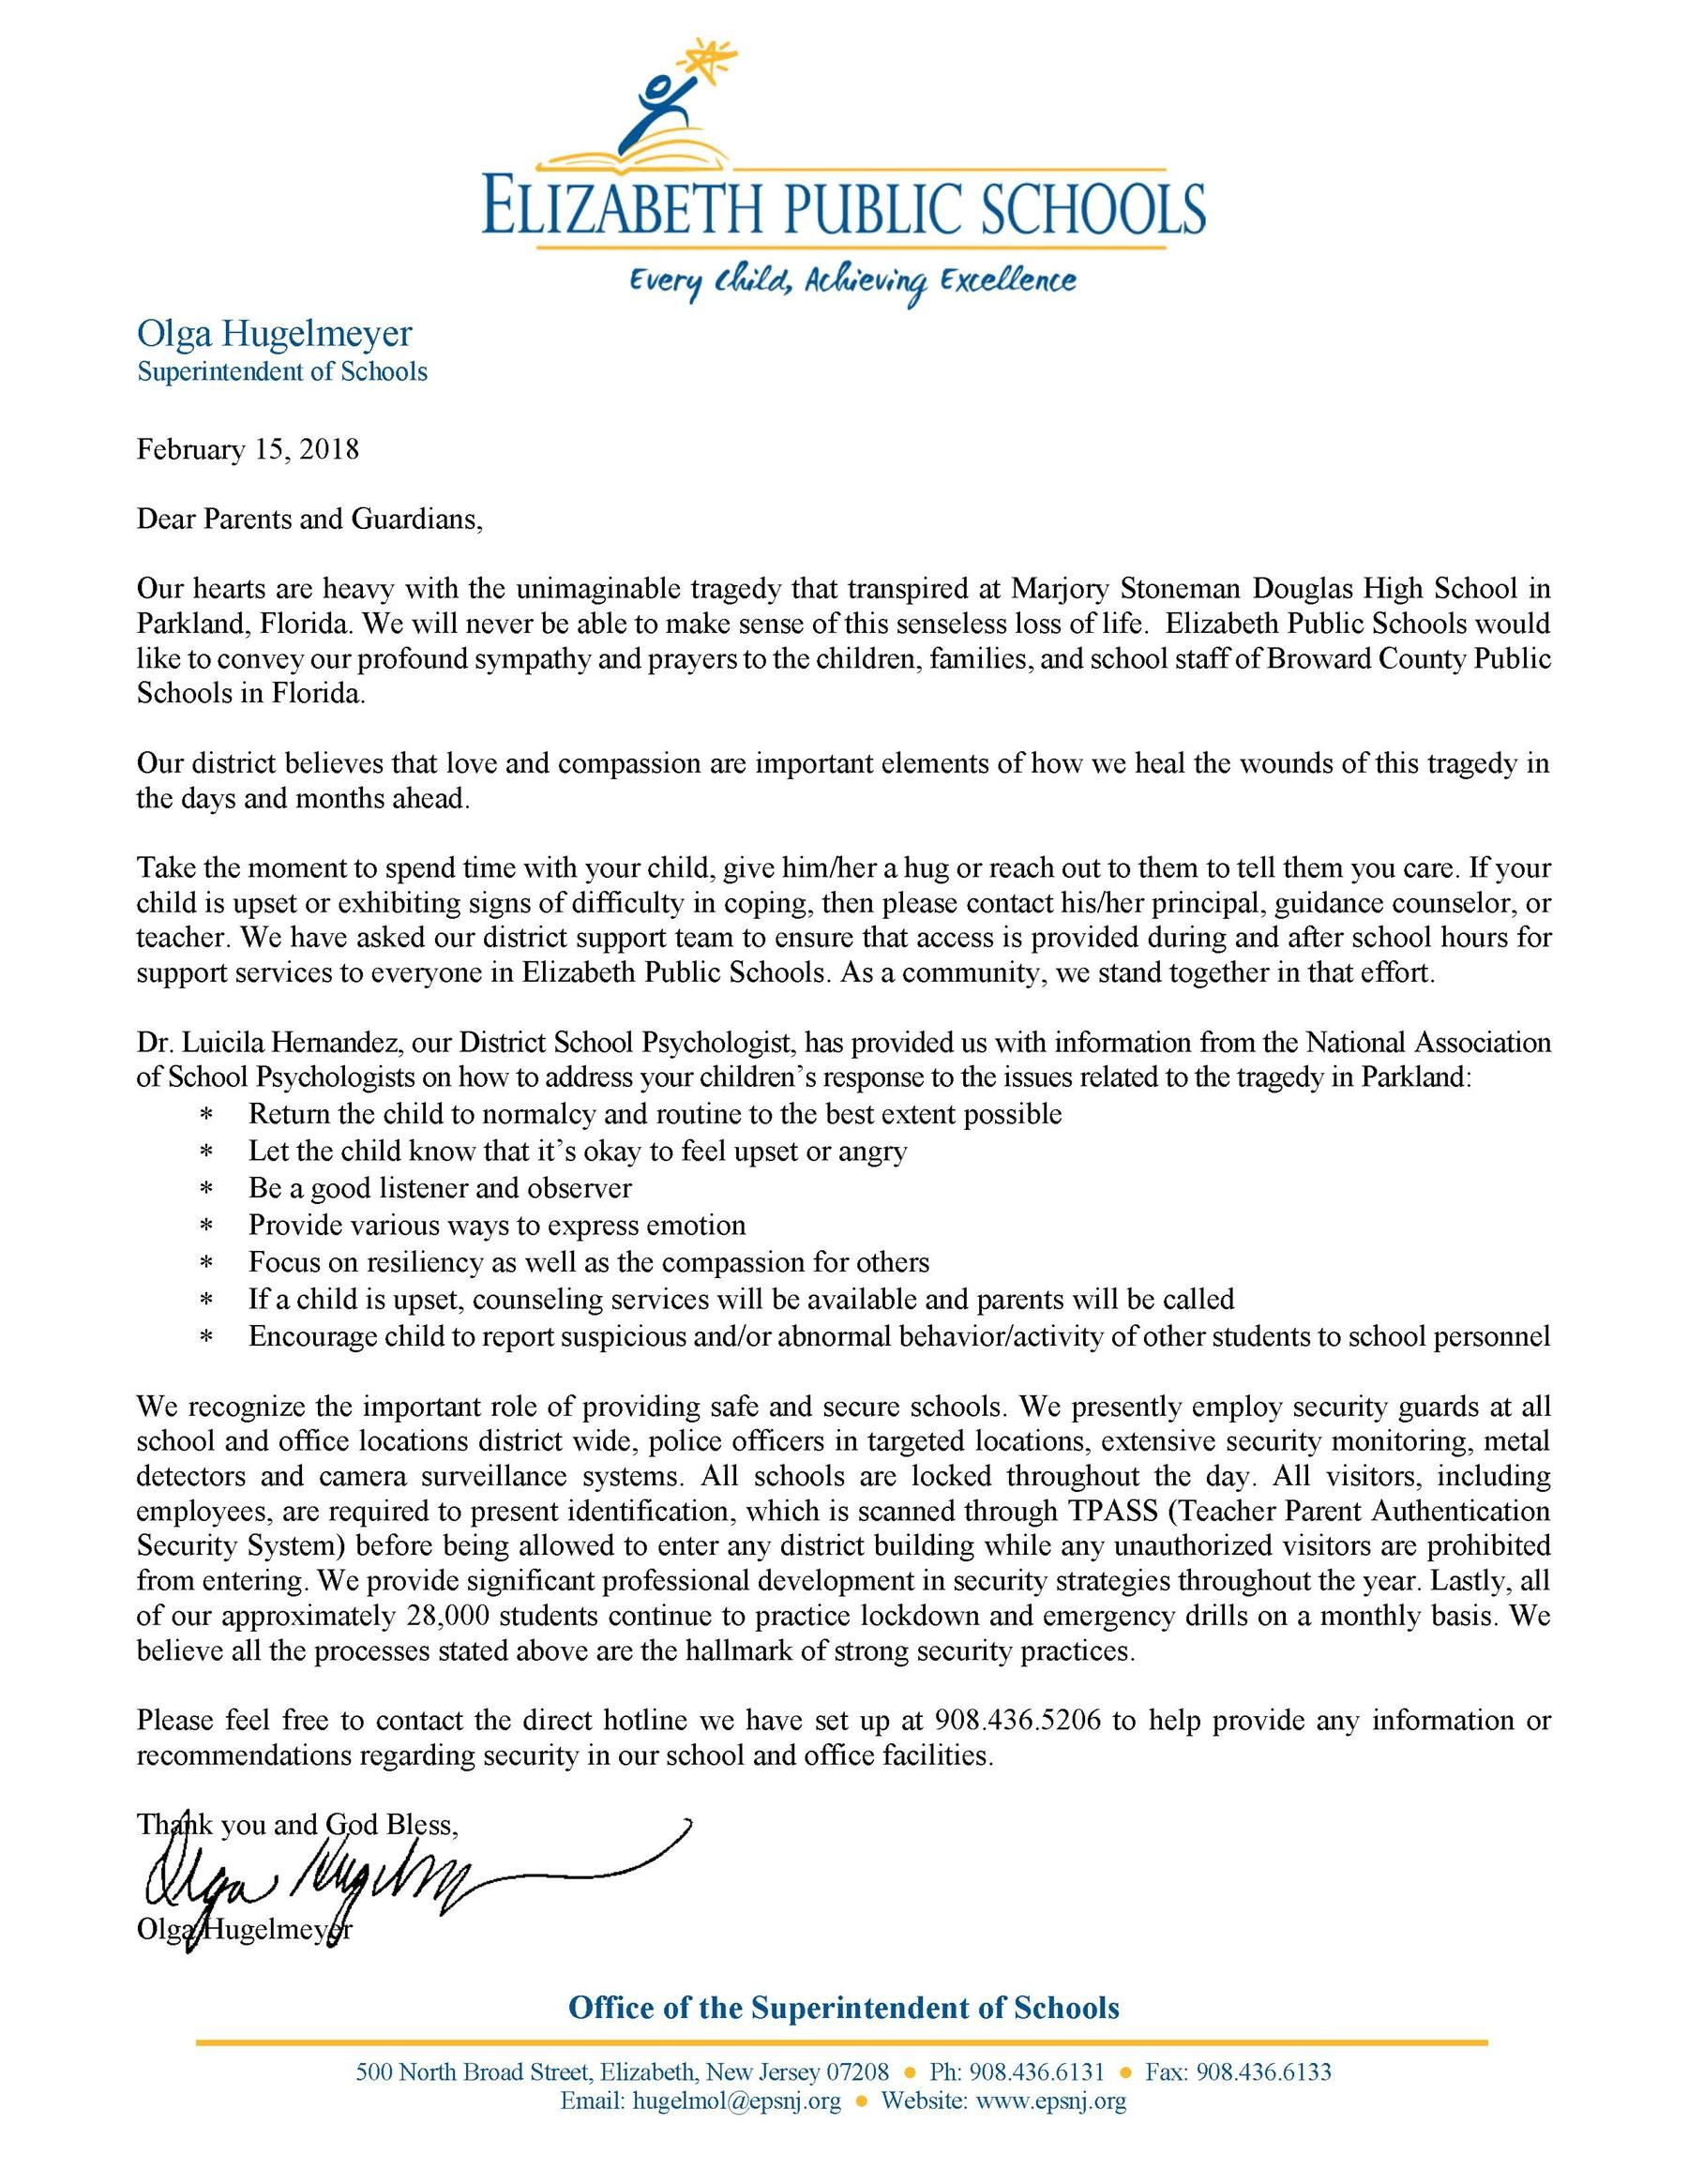 Parkland tragedy letter to Elizabeth Public Schools Parents and Guardians- 2-15-18